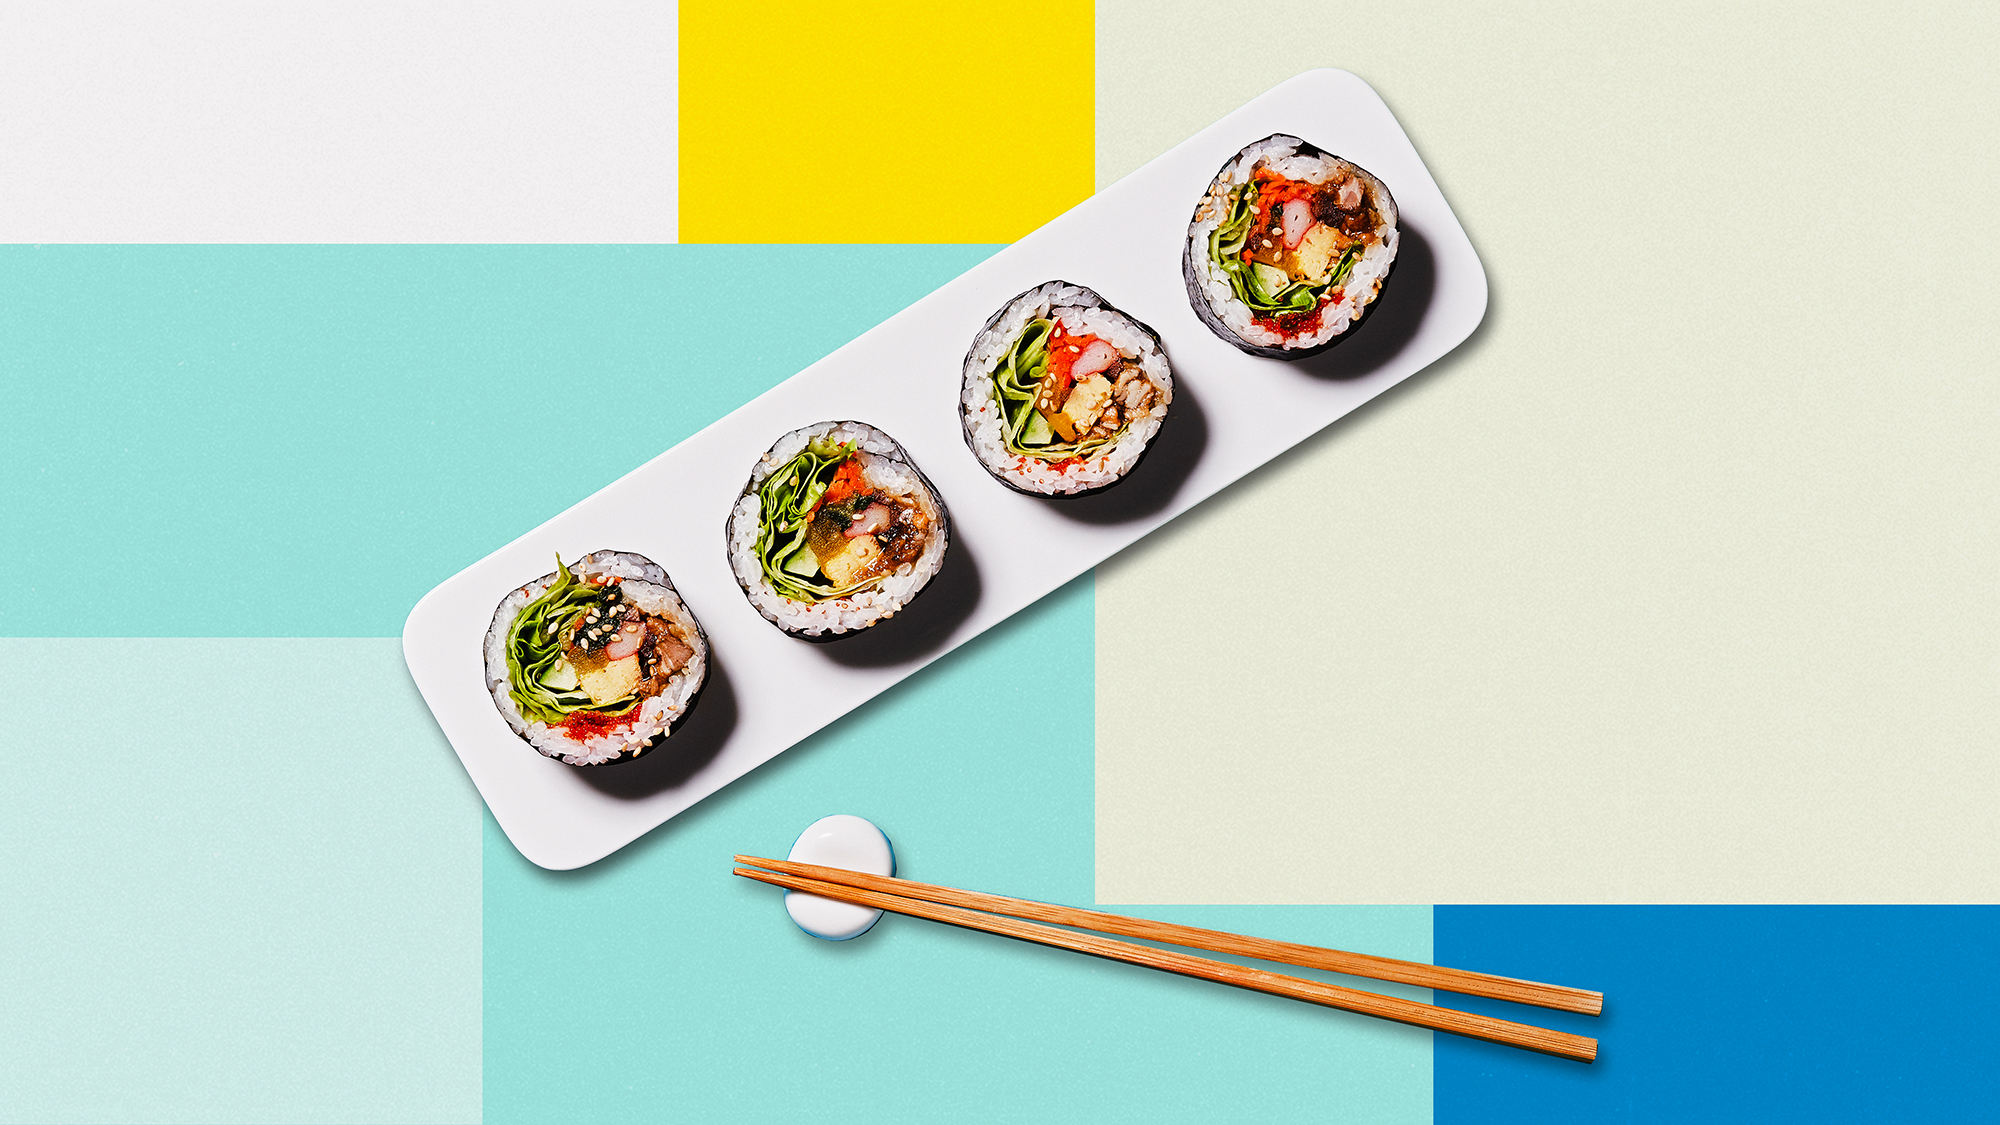 Sushi roll and chopsticks on a designed background